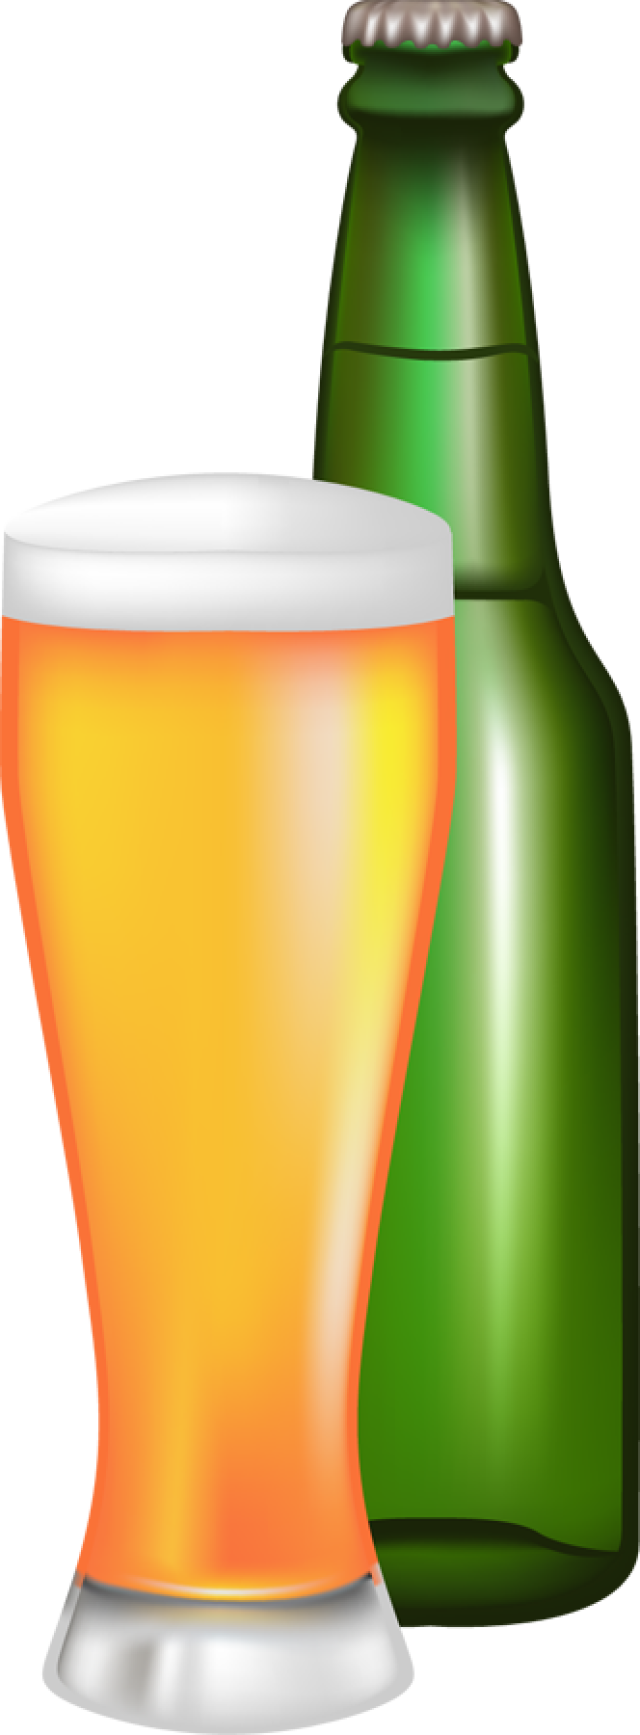 Beer bottle clipart png.